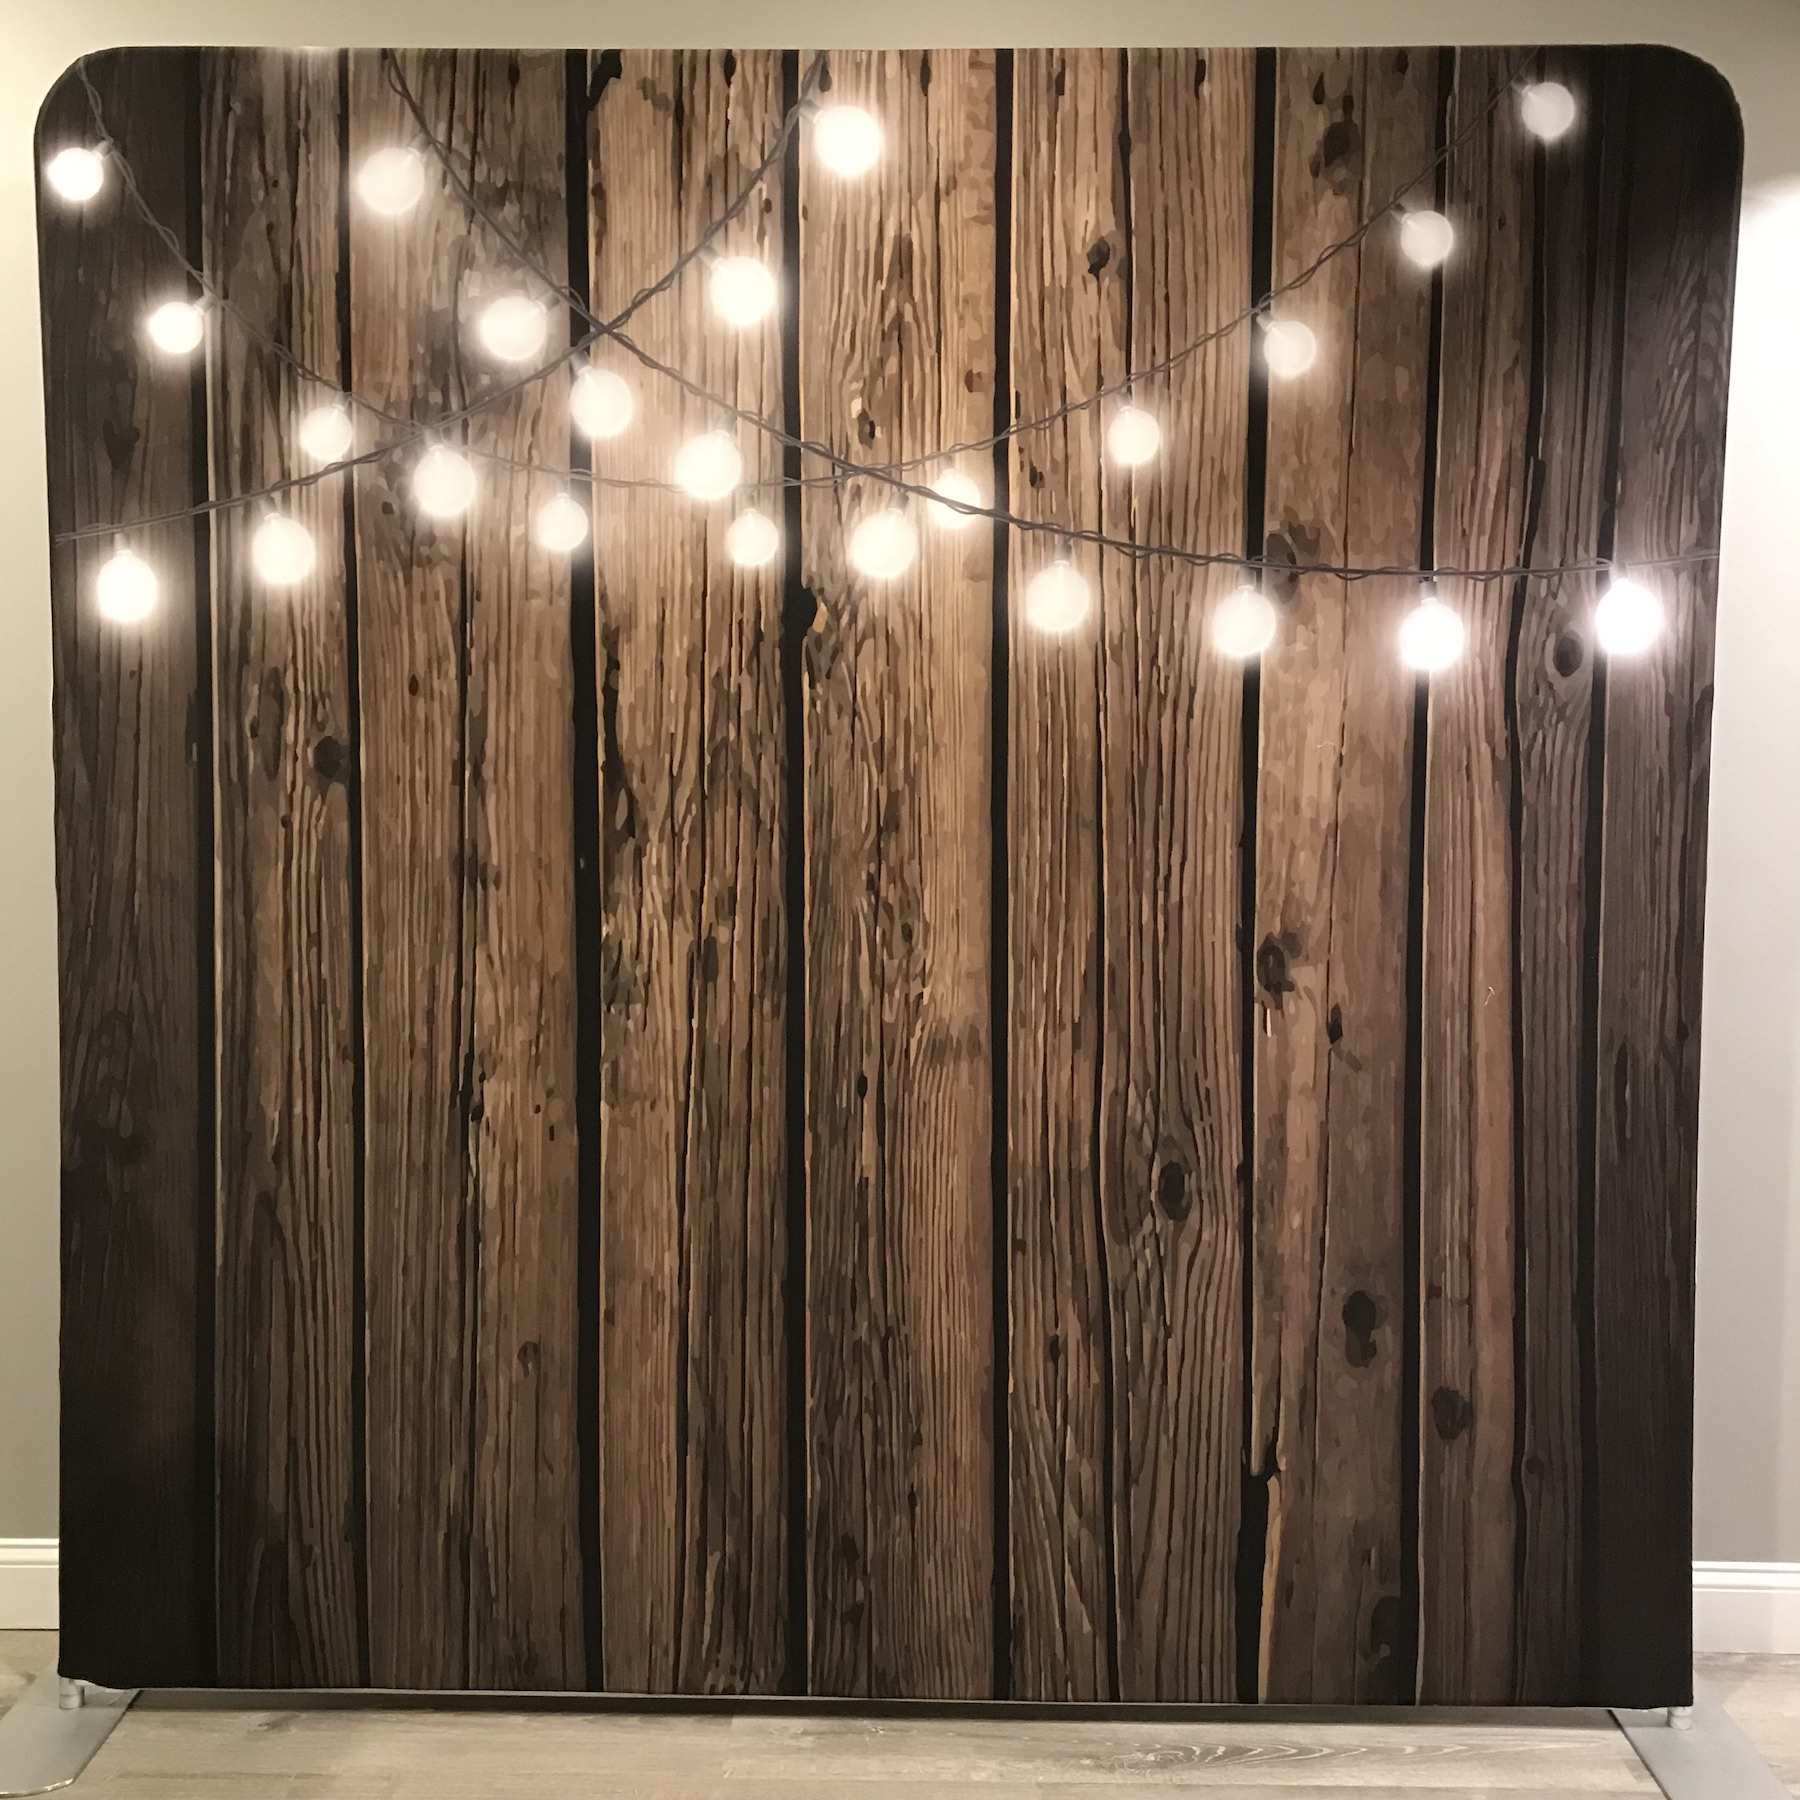 Dark Wood with String Lights